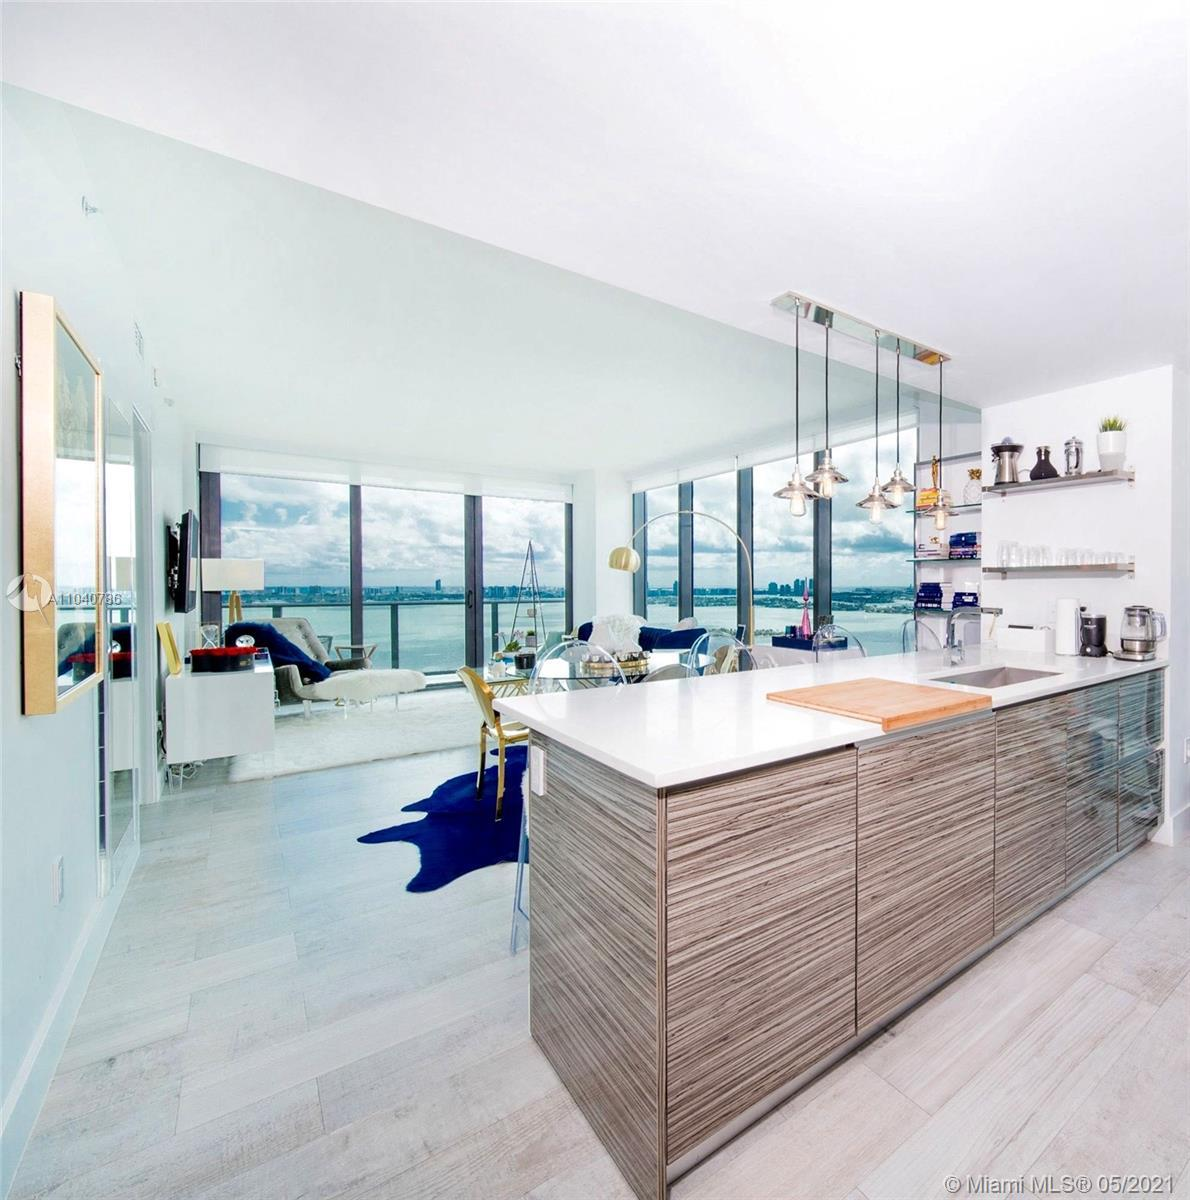 Gorgeous 3 bedroom, 2.5 bath upgraded unit at Icon Bay. Direct Bay views and furnished beautifully.